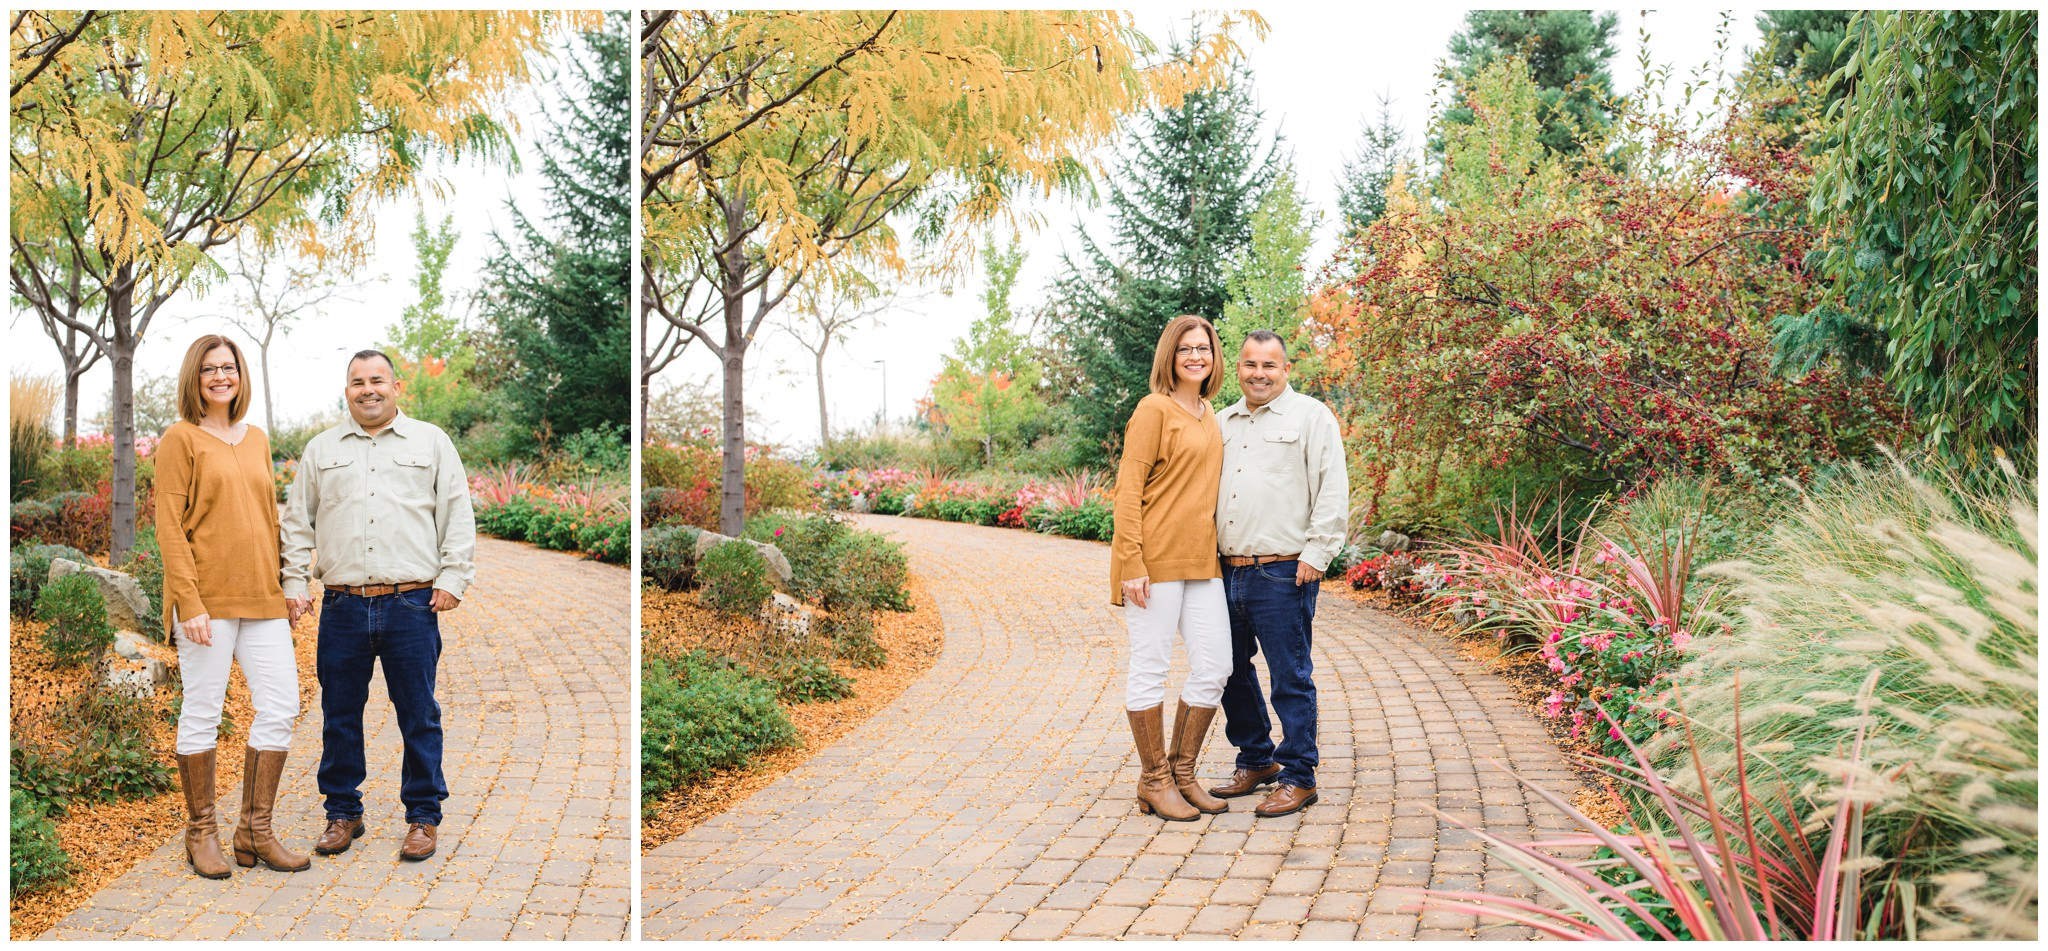 Extended family session in Idaho falls